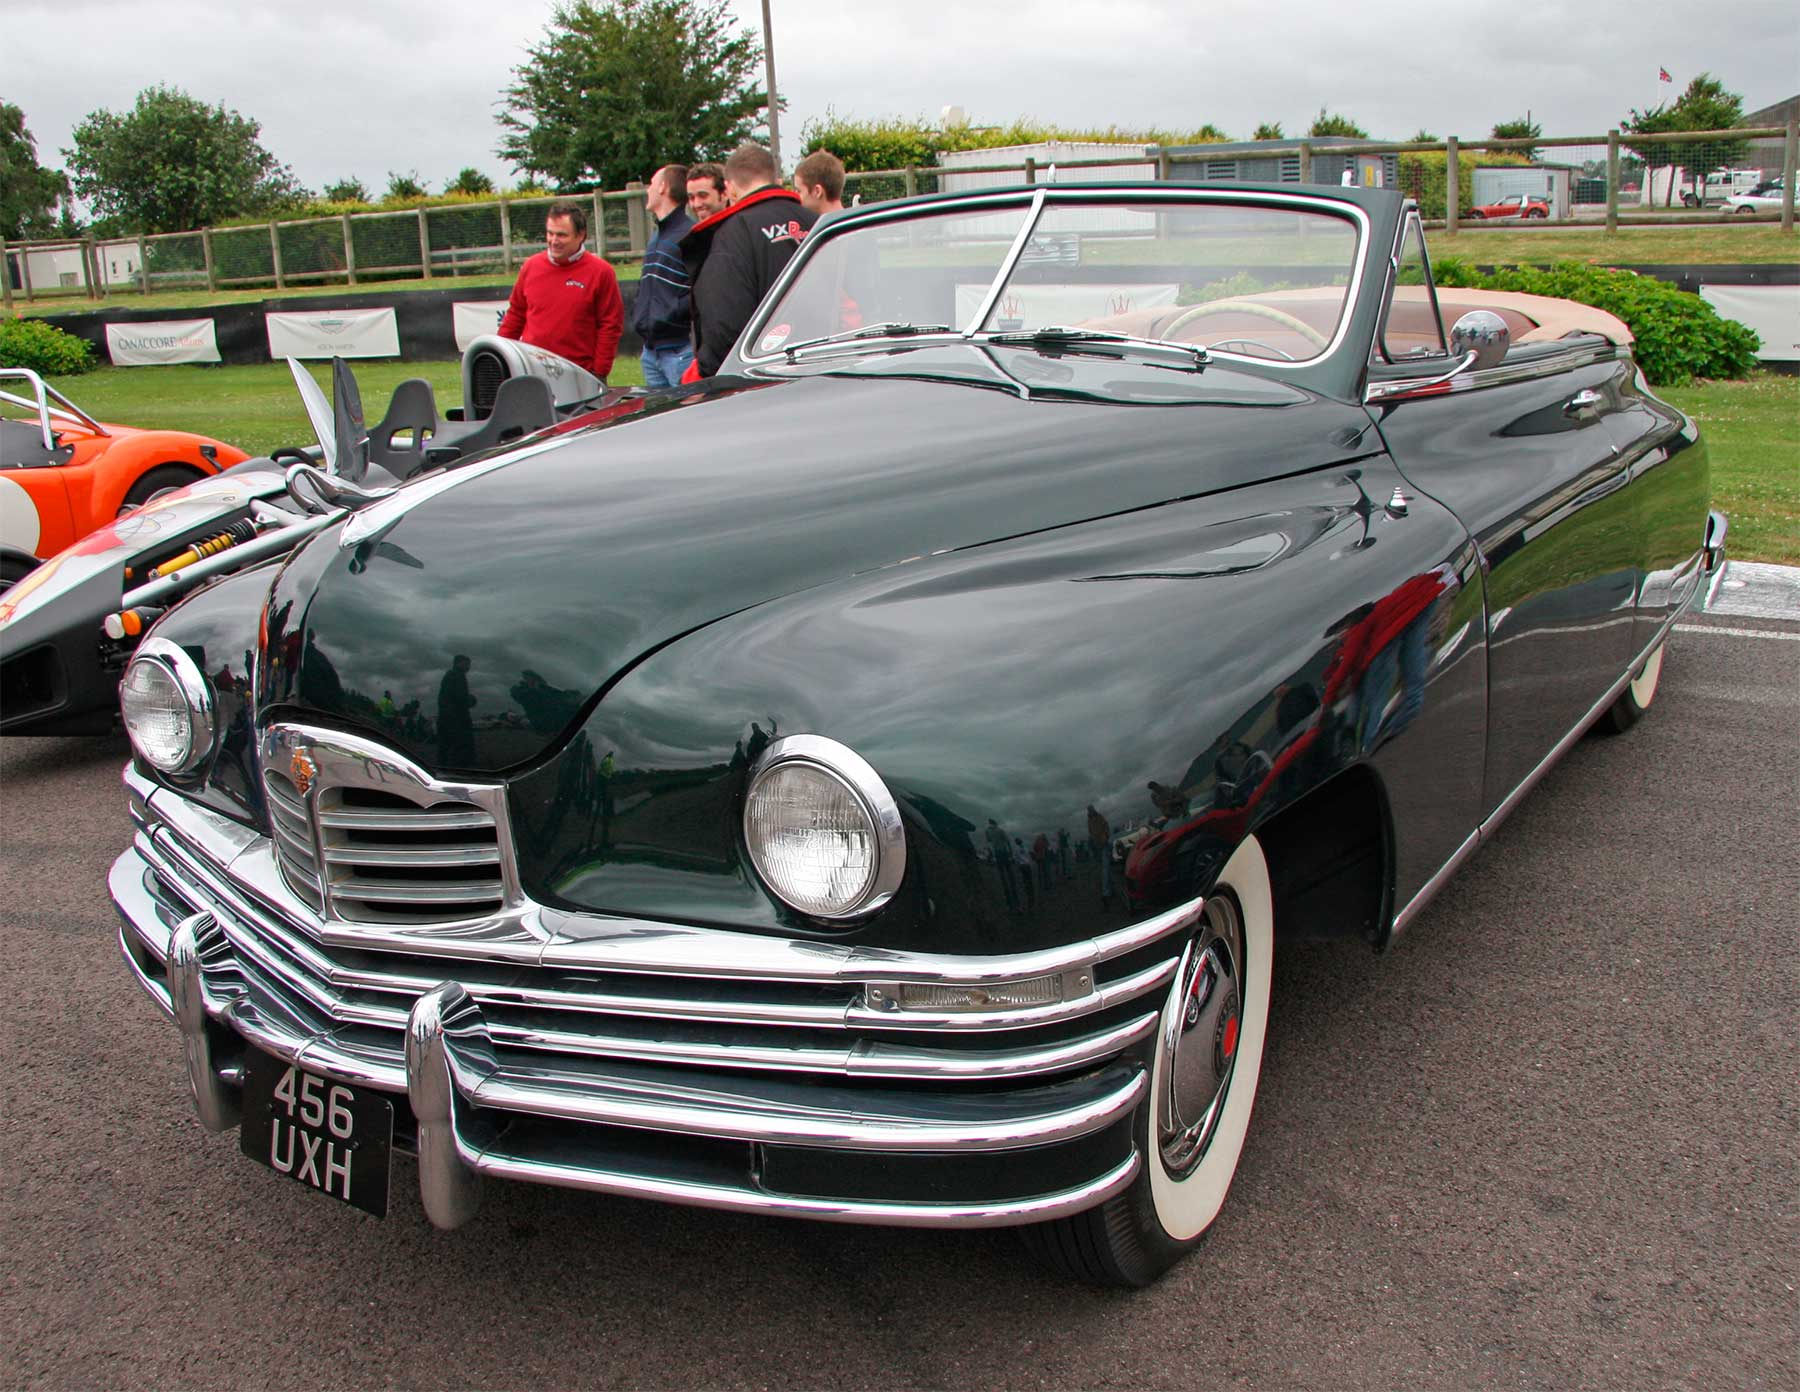 Packard Super Eight Victoria Convertible Coupe - 2279-9